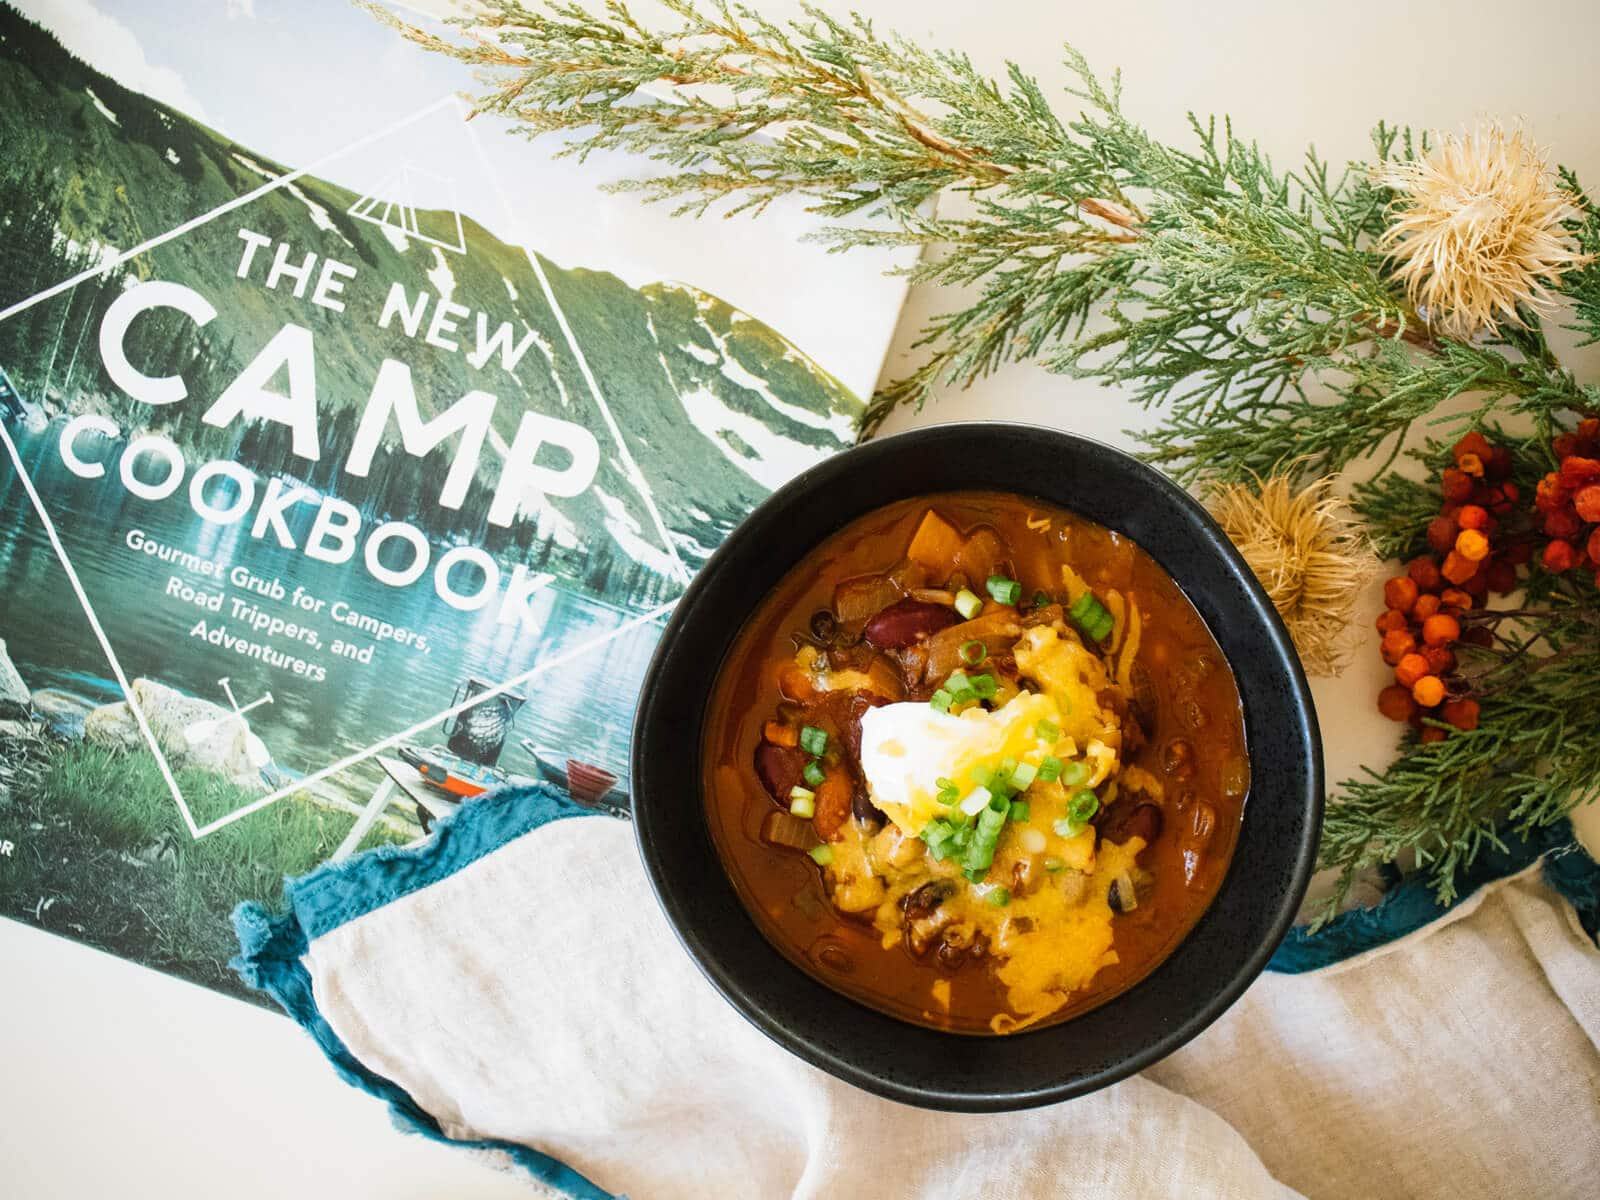 Five-alarm three-bean chili from The New Camp Cookbook